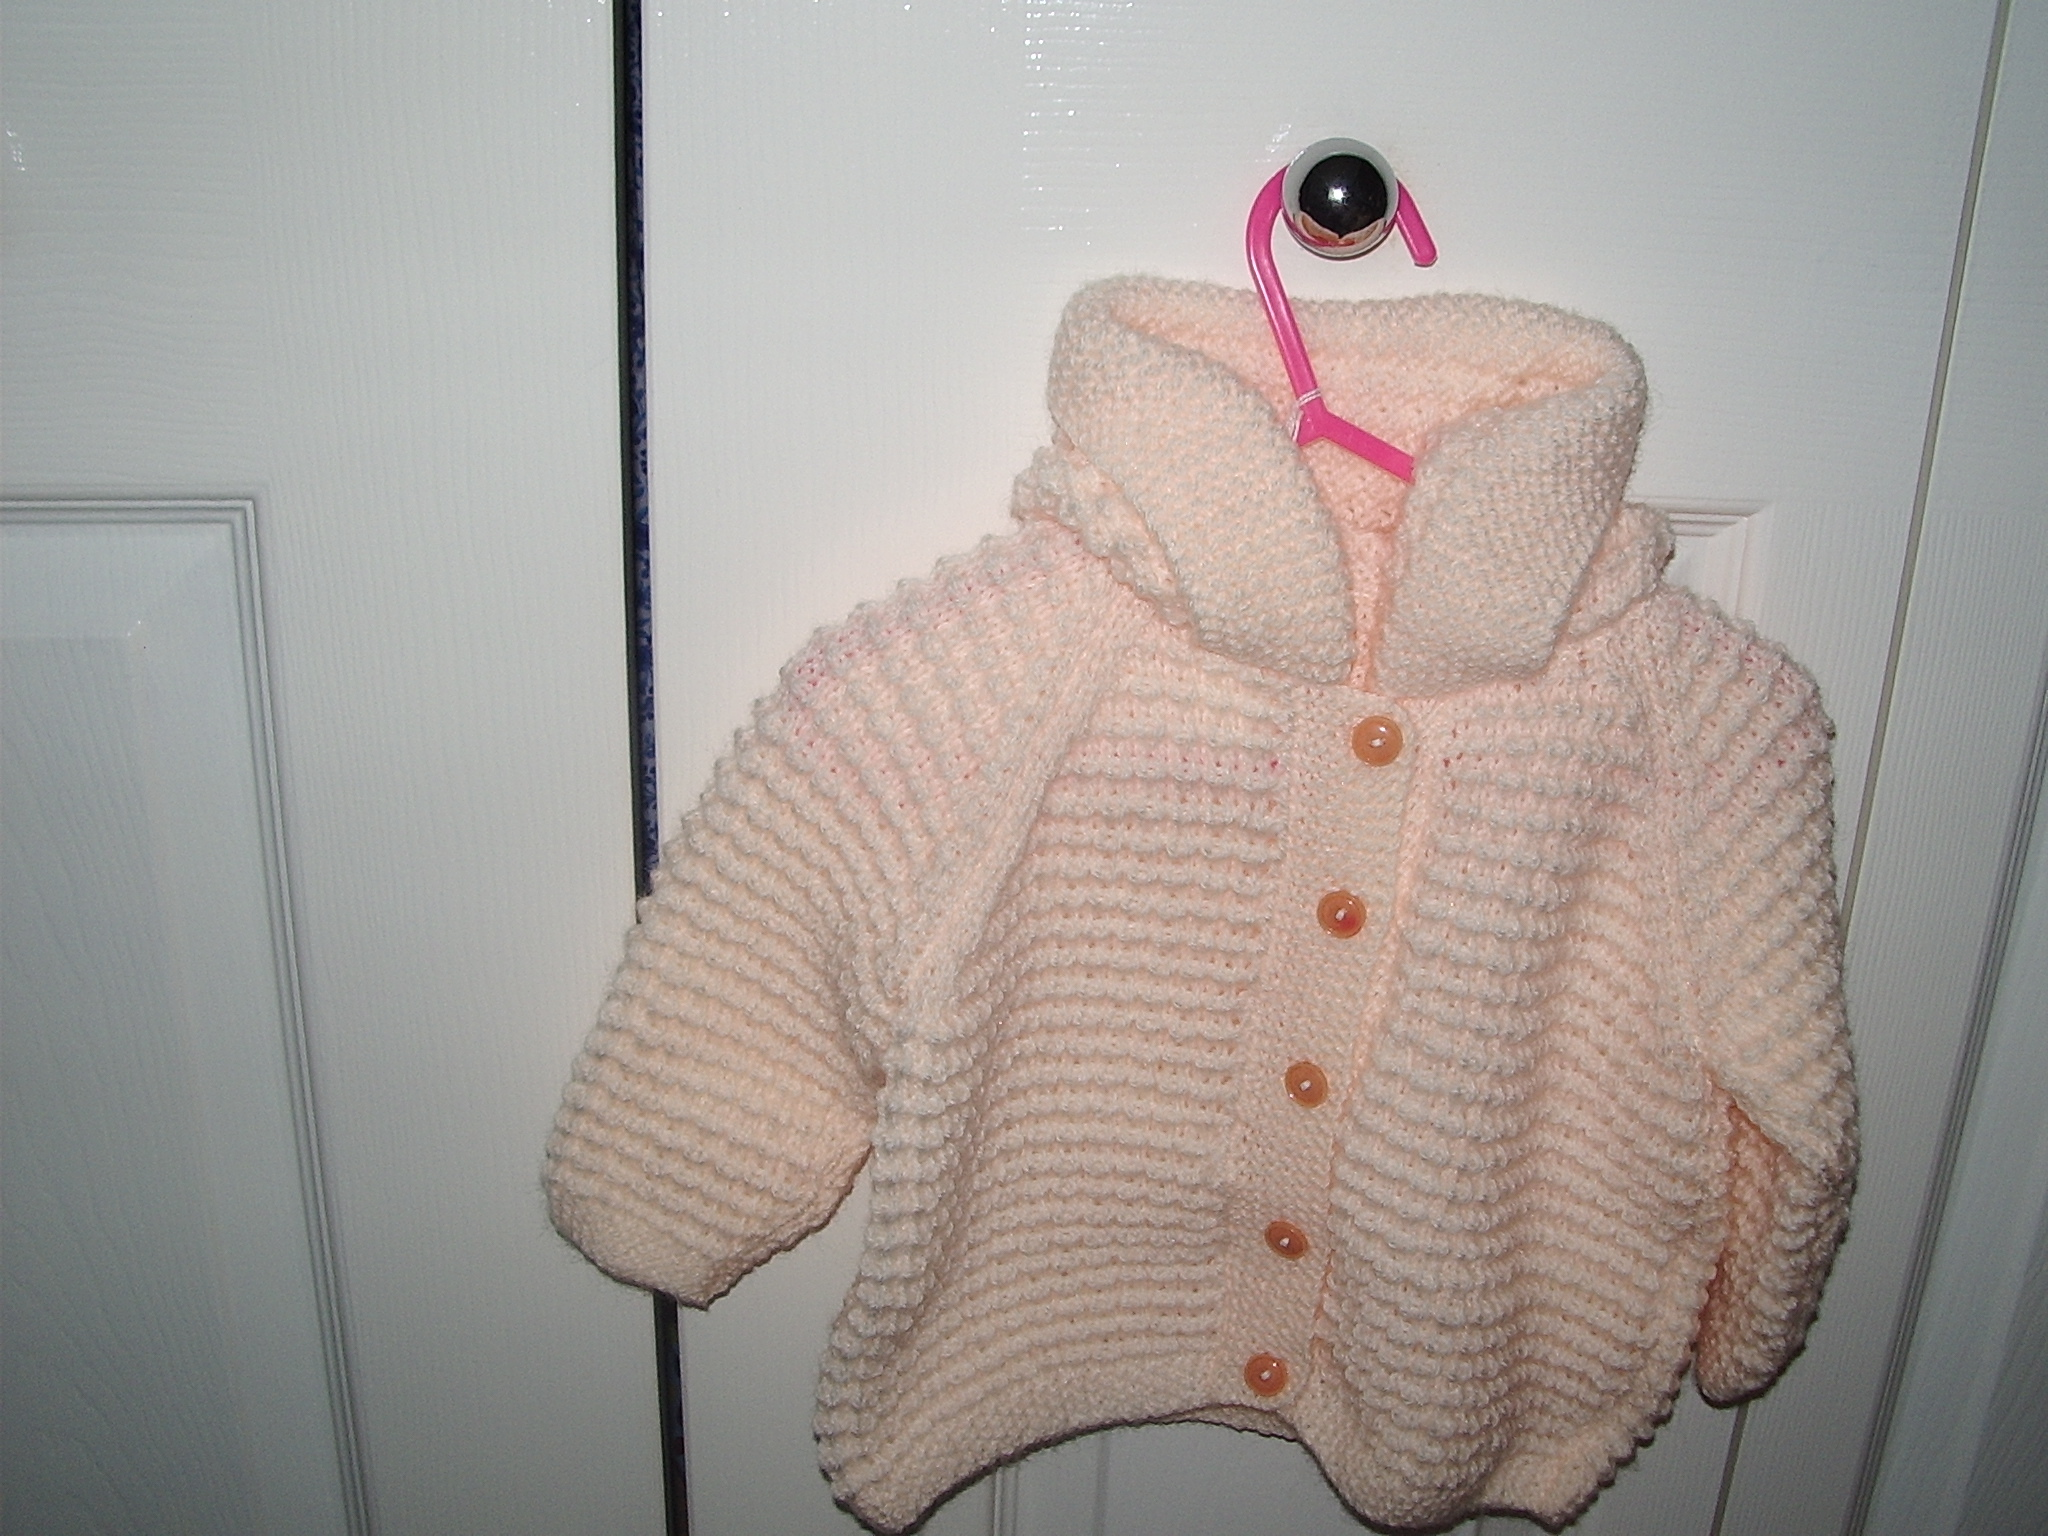 c7fdaa82c10d50 knitted babies hoodies knitting project by Kate R